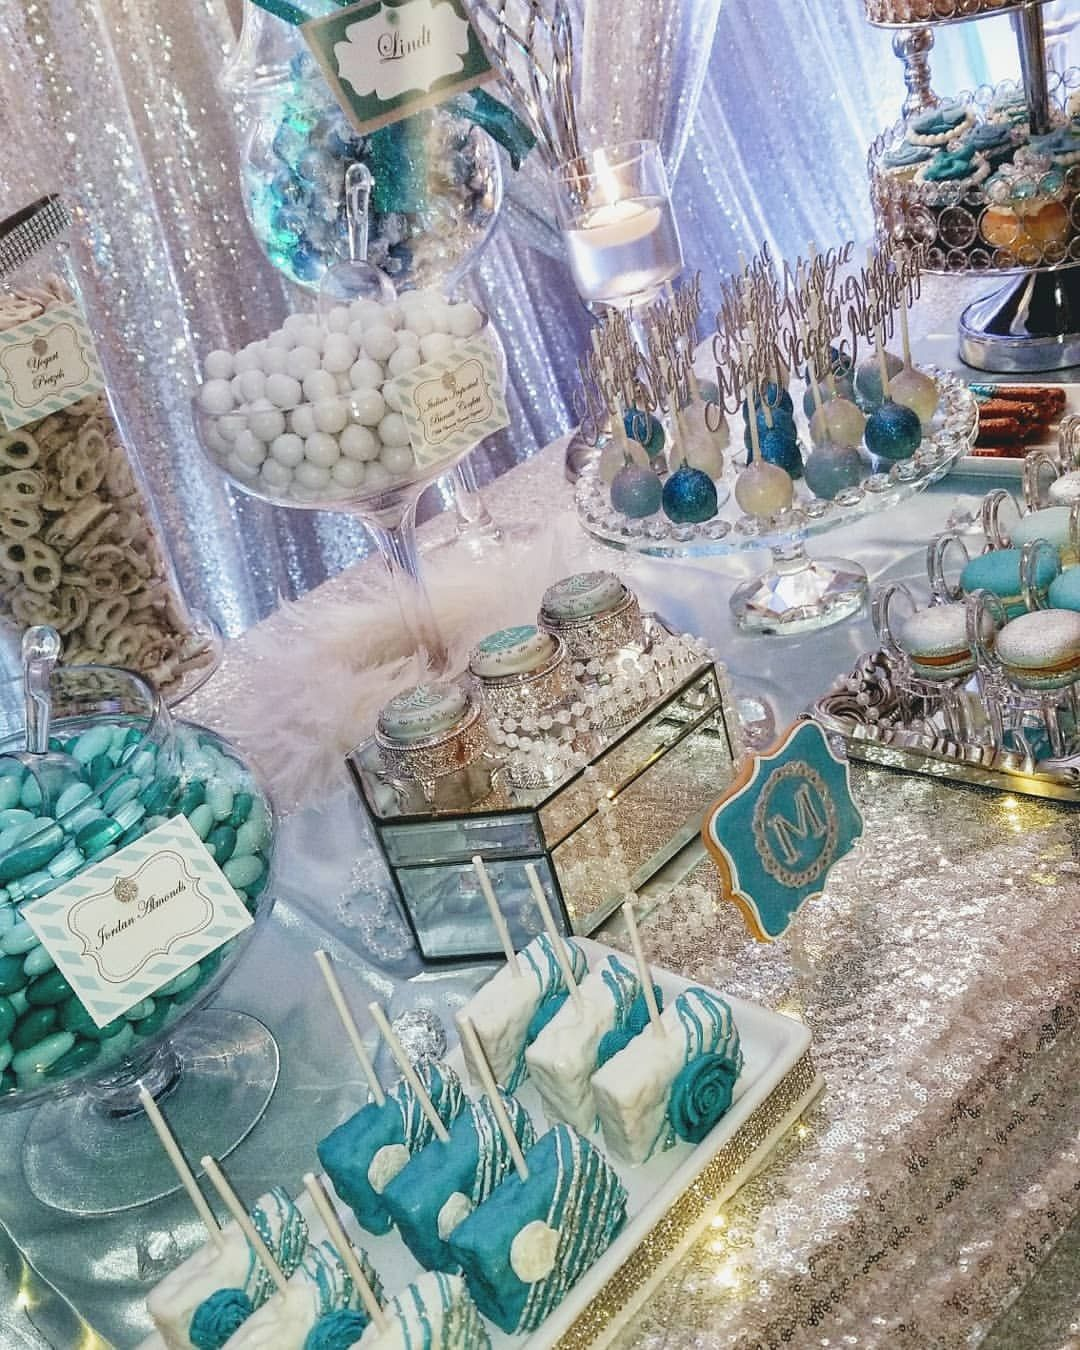 """Eye Candy Buffets on Instagram: """"There you have it! A 50 shades of blue, Bling-Glam Sweet Table we designed for a very lavish Sweet 16 event. And yes, that is a…"""""""